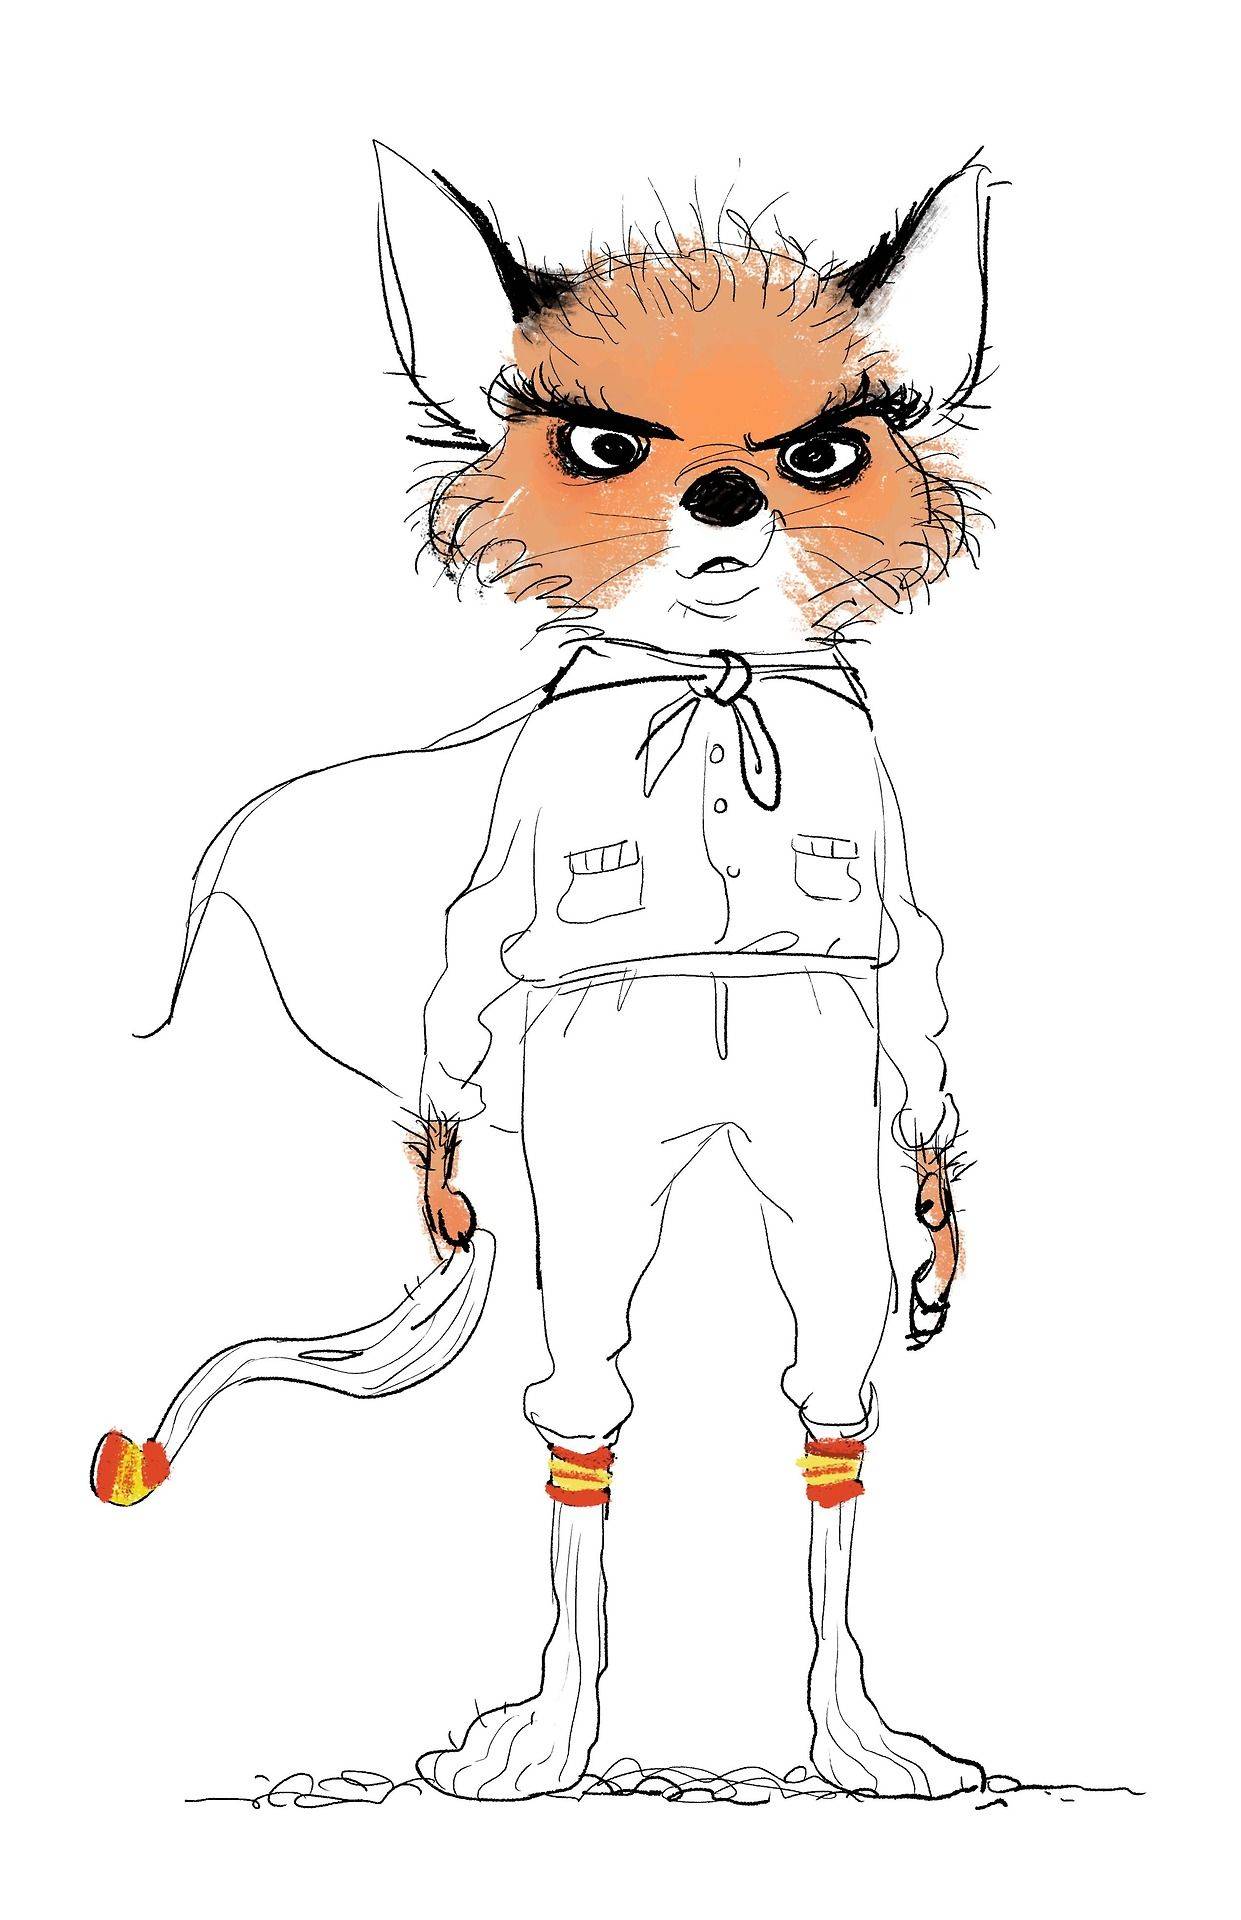 Ash From The Fantastic Mr Fox By Wes Anderson Love This Character Fox Illustration Illustration Character Design Character Design Animation